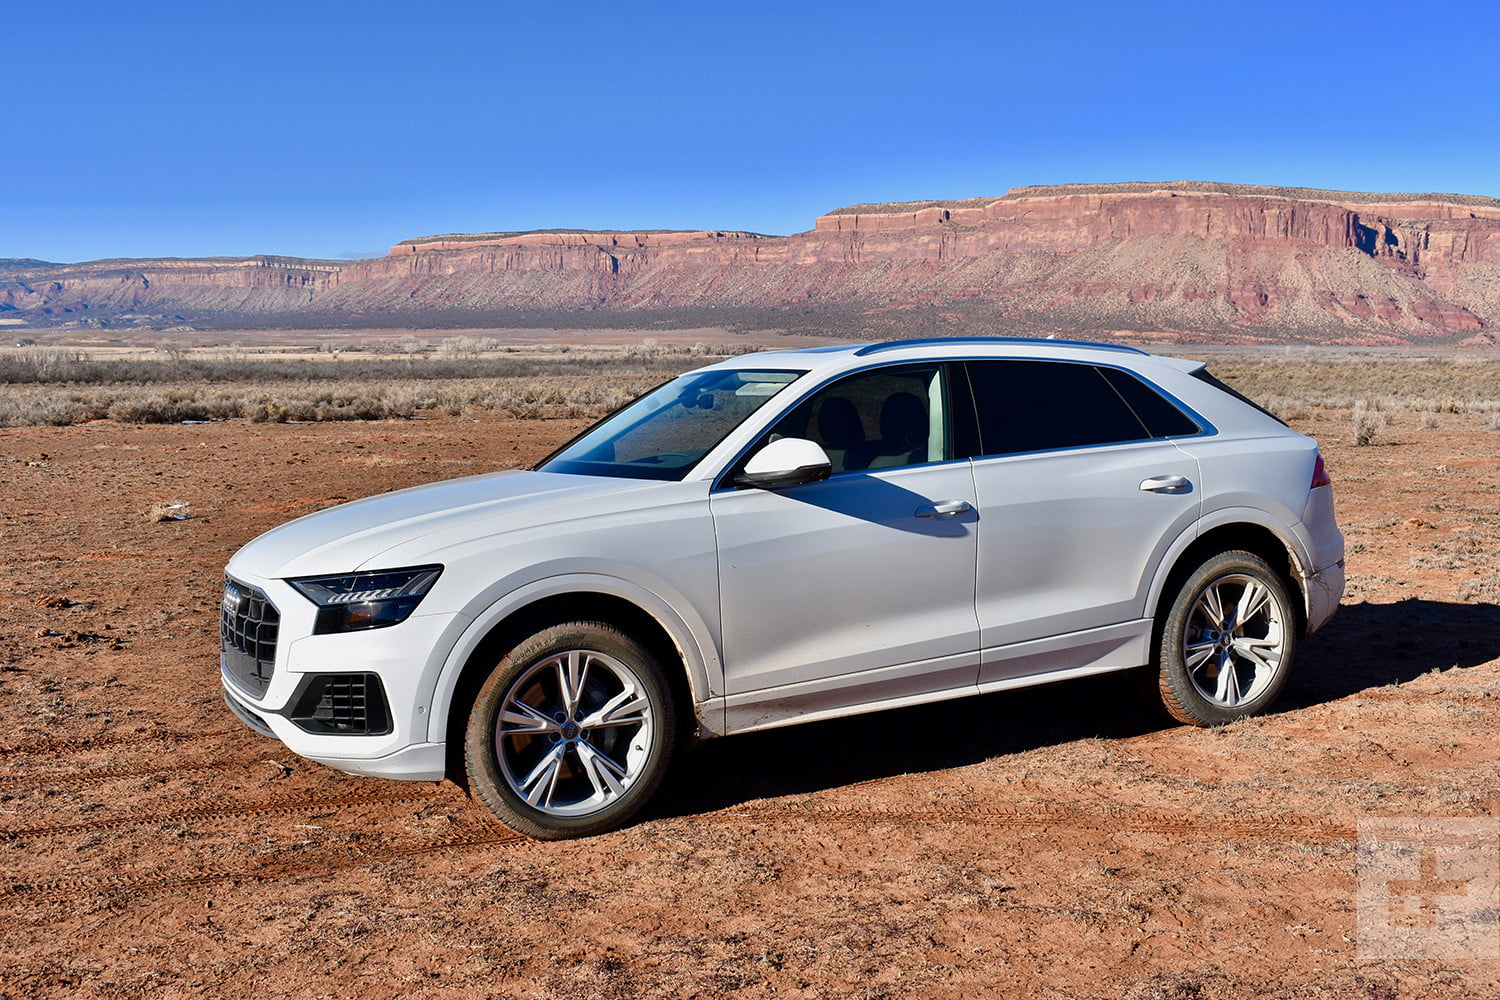 2019 Audi Q8 Audi S High Tech Flagship Q8 Suv Is Perfect For An